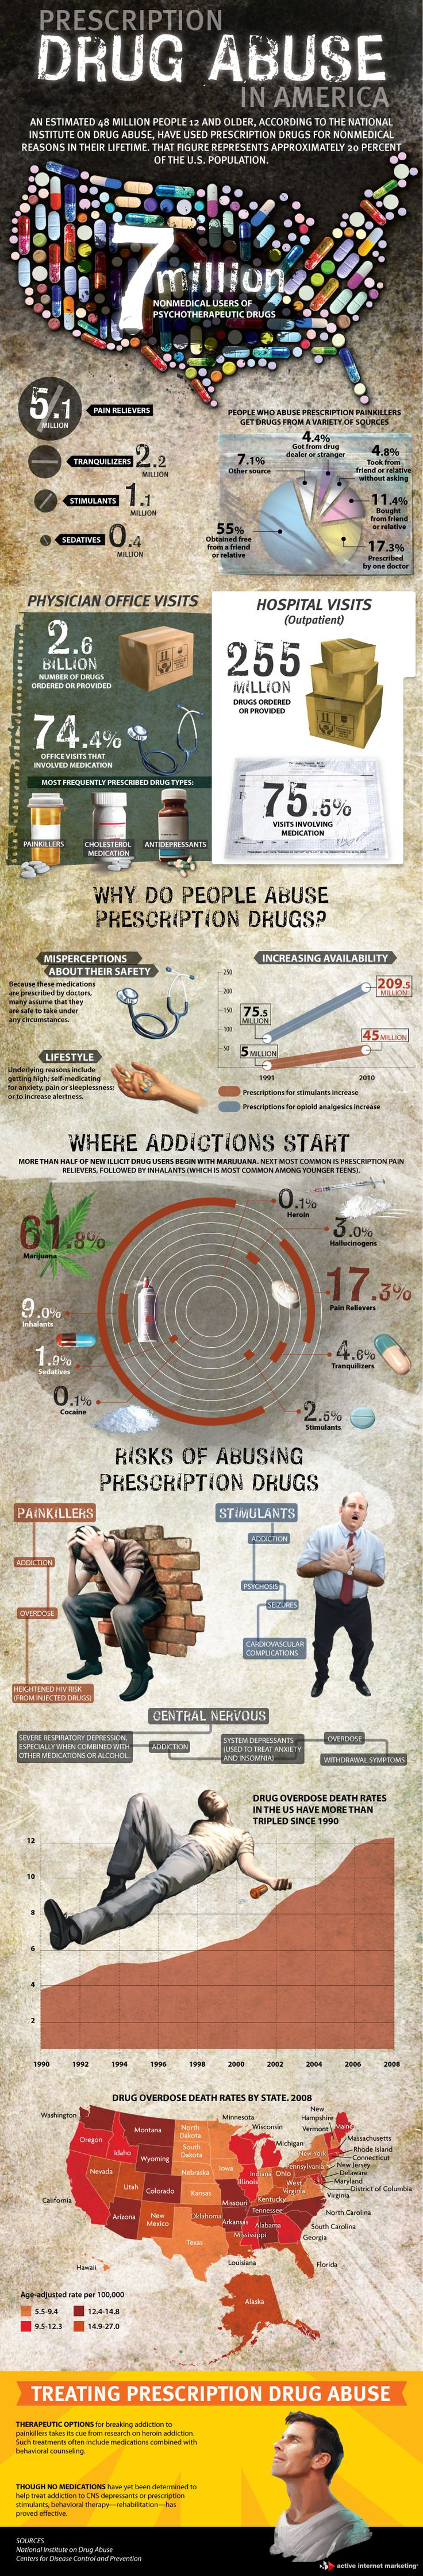 Infographic: Prescription Drug Abuse in America - Stop Your Addiction, http://blog.stopyouraddiction.com/infograph/infographic-prescription-drug-abuse-in-america/